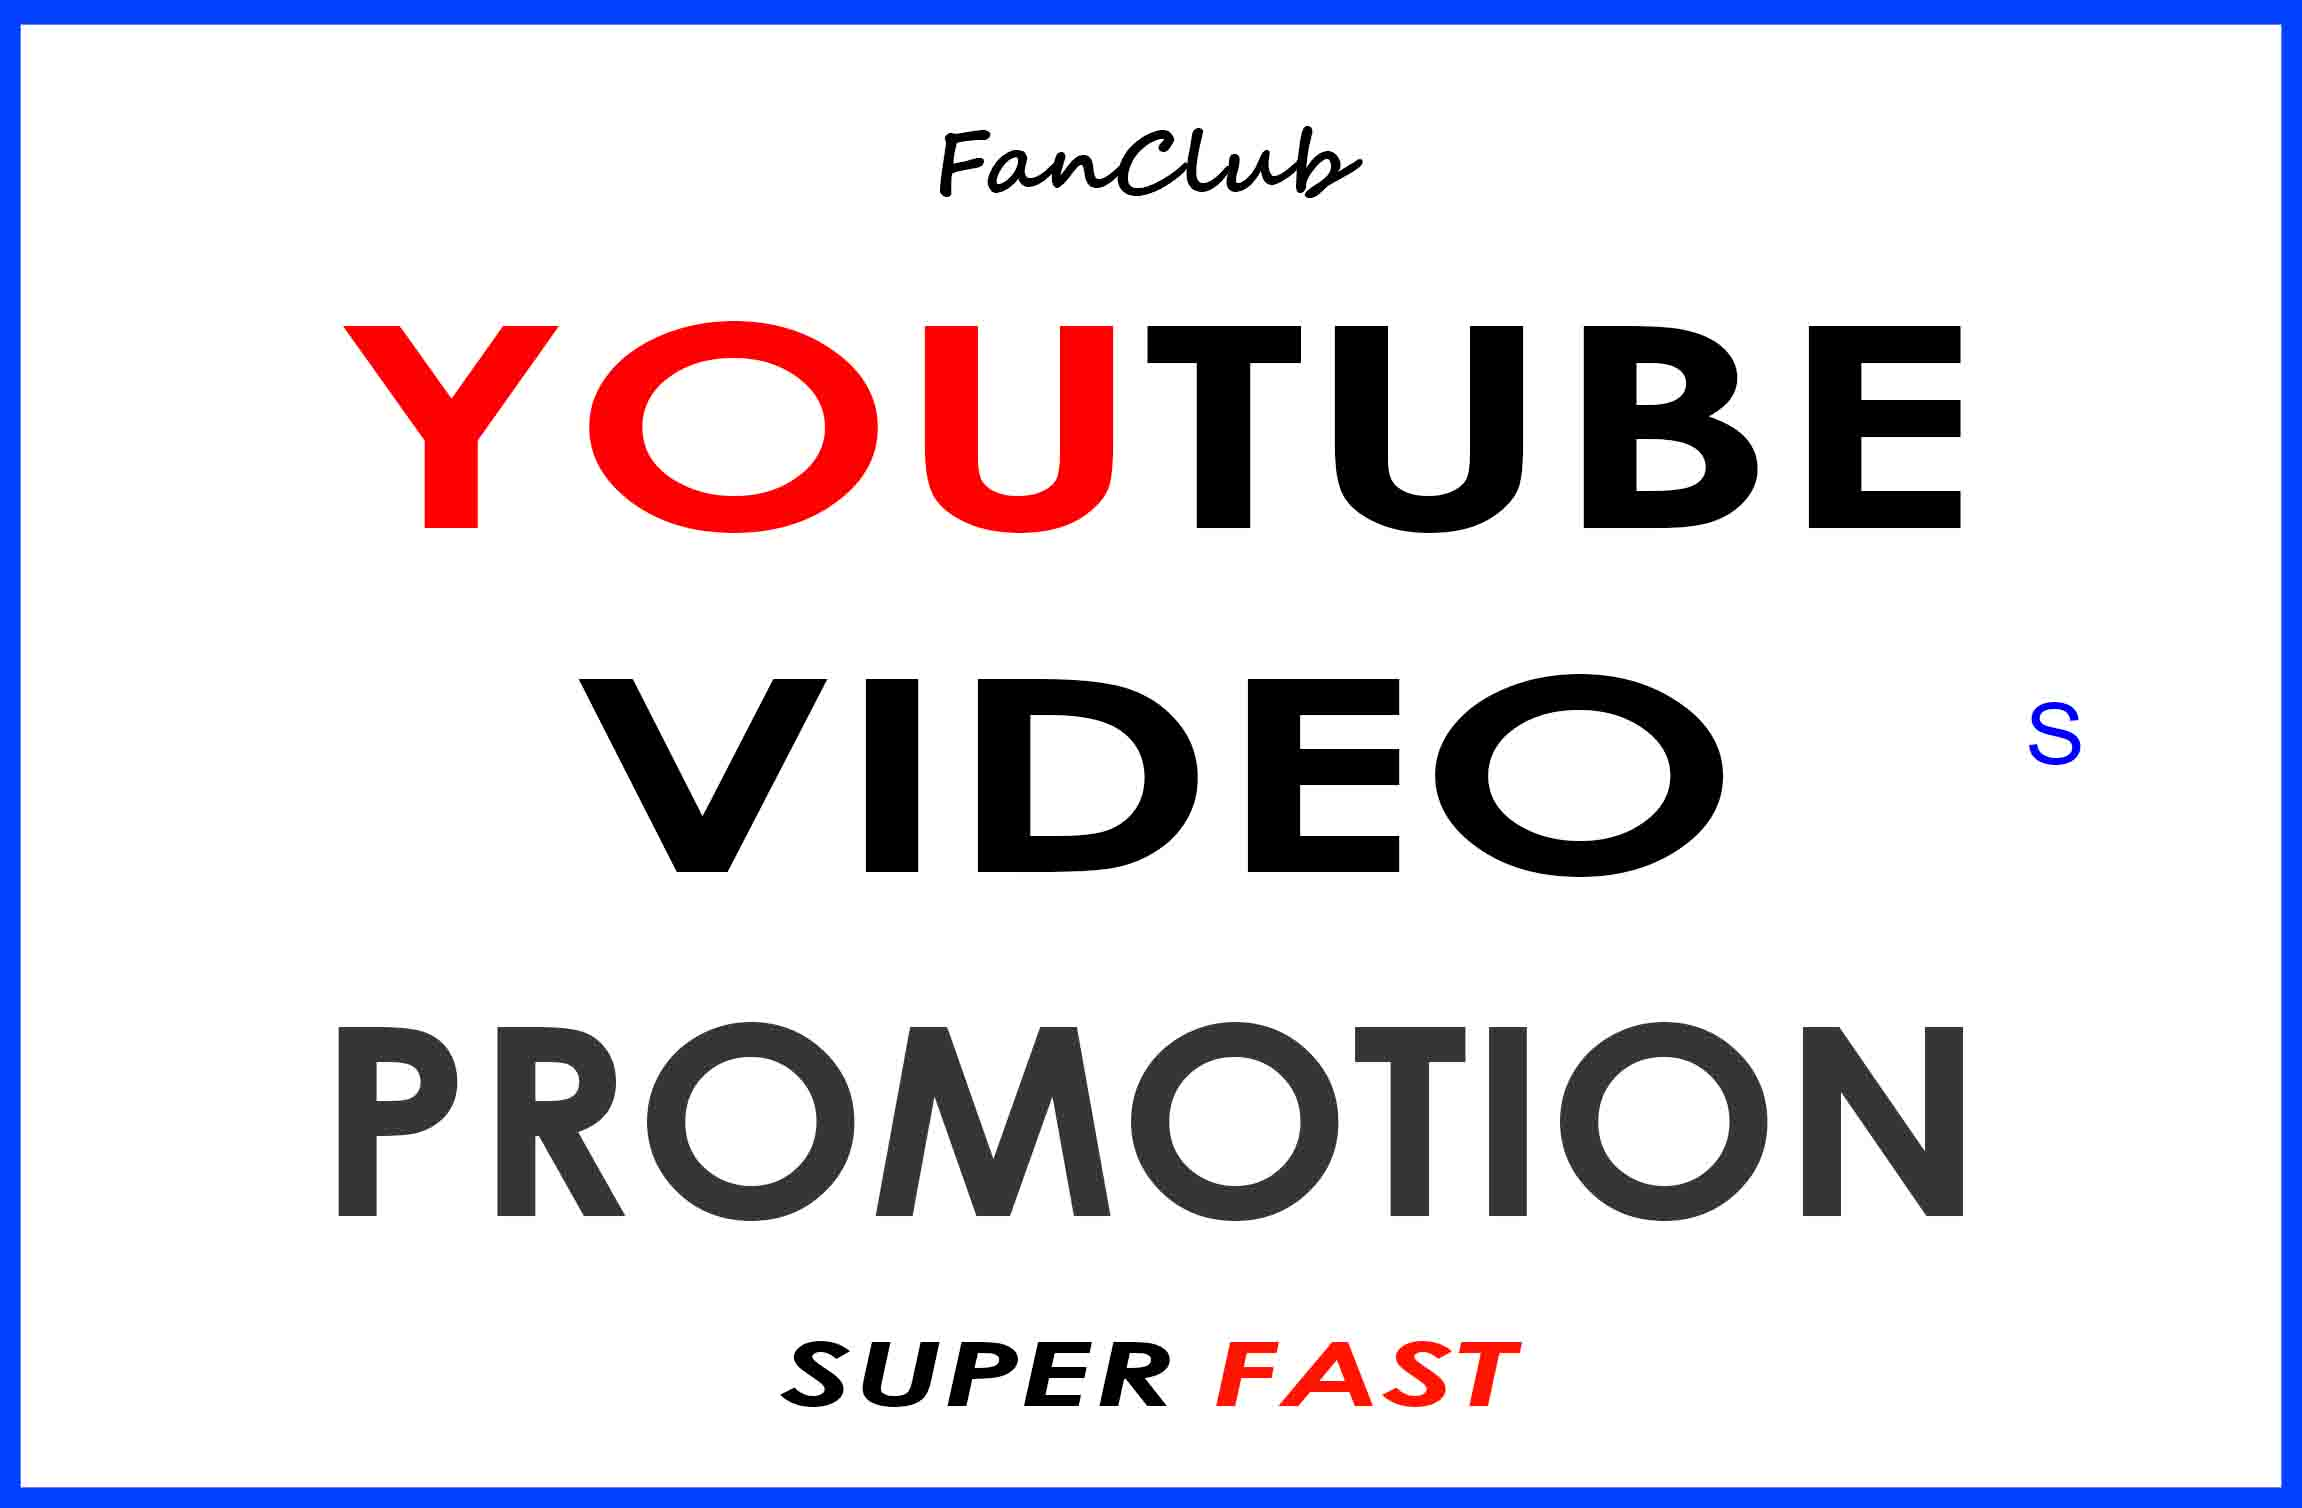 YOUTUBE VIDEO PROMOTION AND MARKETING REAL SUPER FAST SERVICE